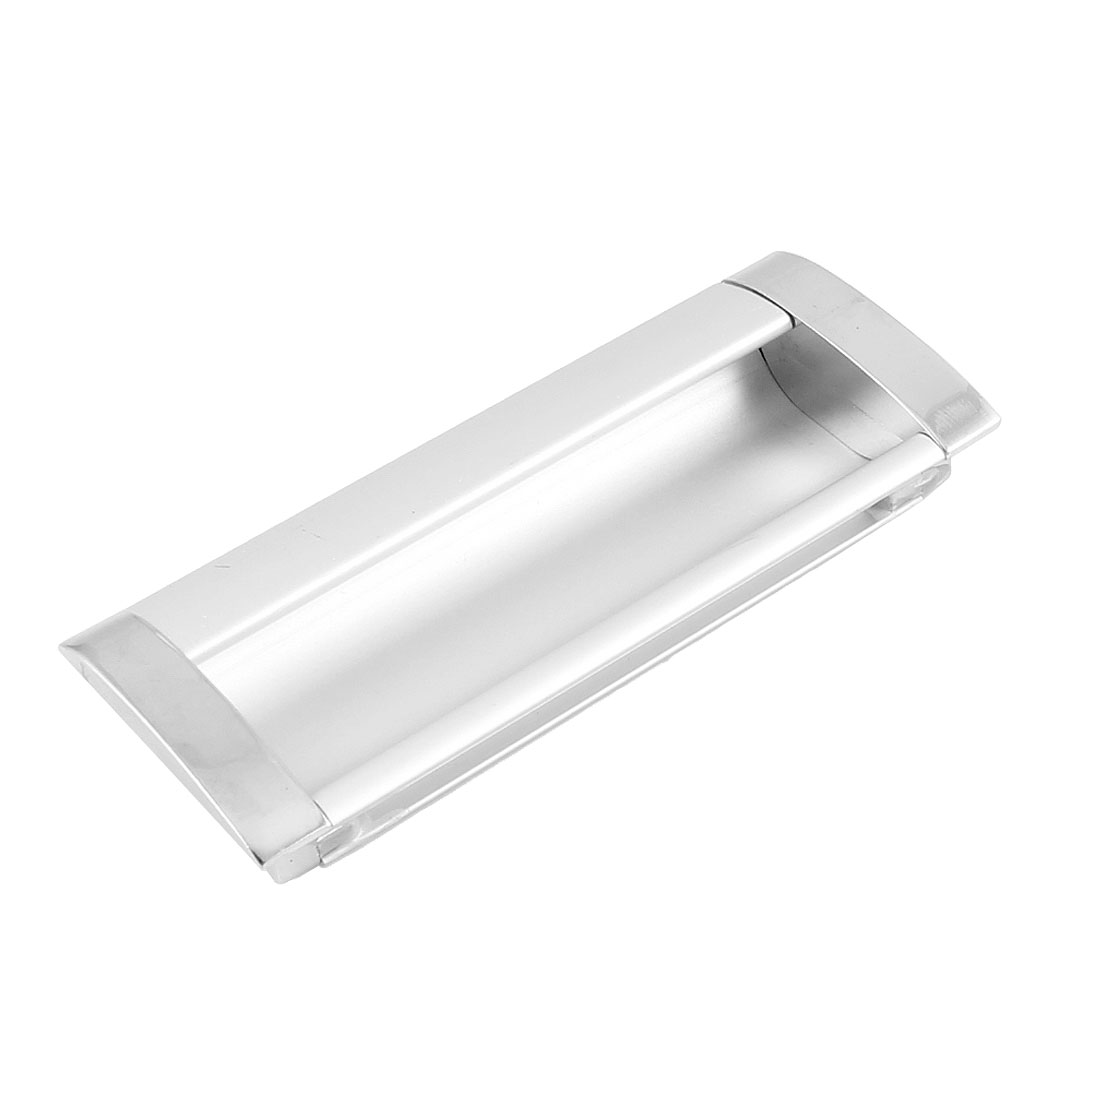 "Silver Tone Aluminum Rectangular Flush Pull Handle 4.3"" Long for Drawer"